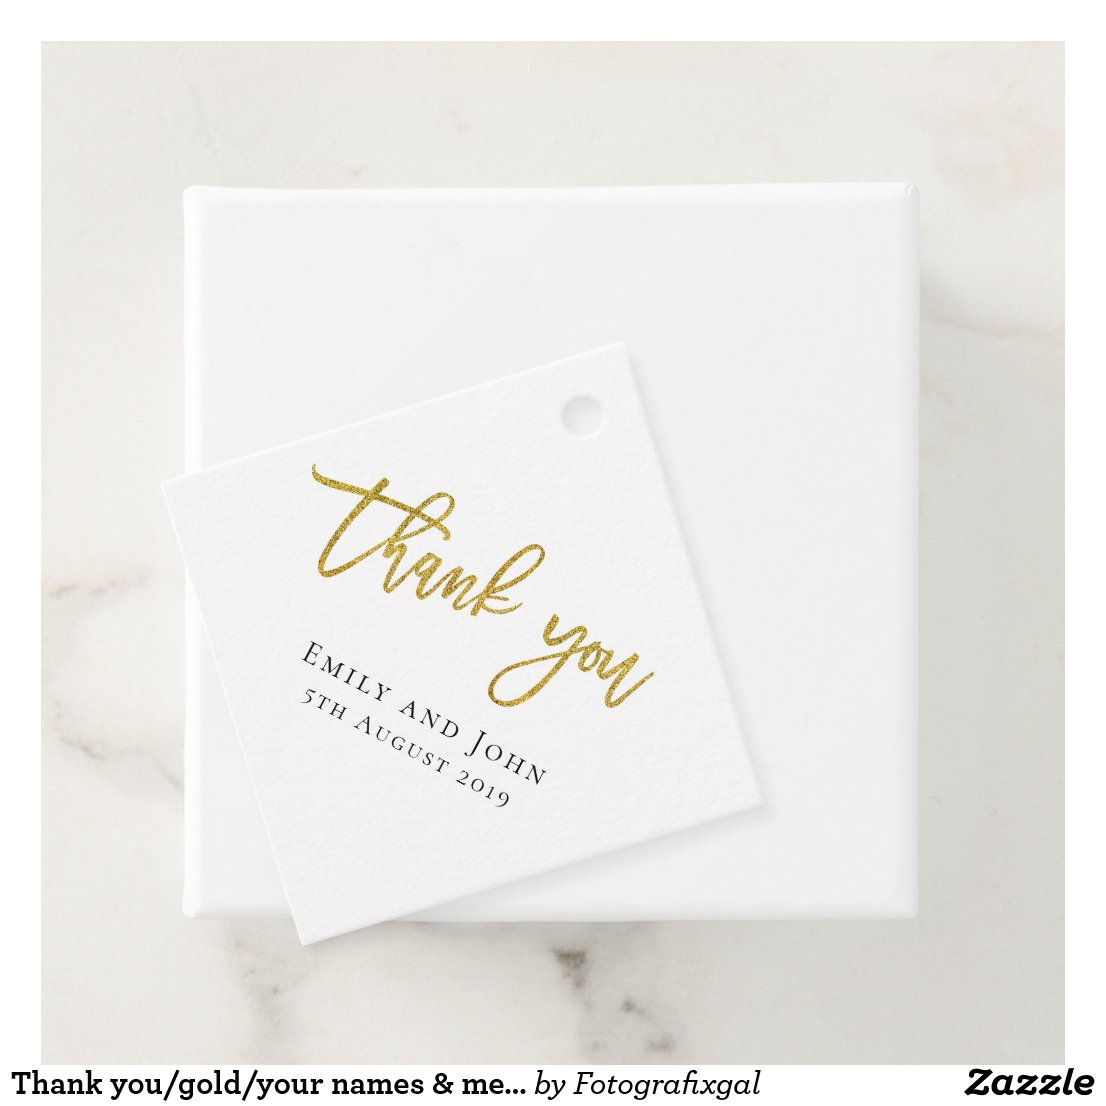 Thank you/gold/your names & message wedding favor tags